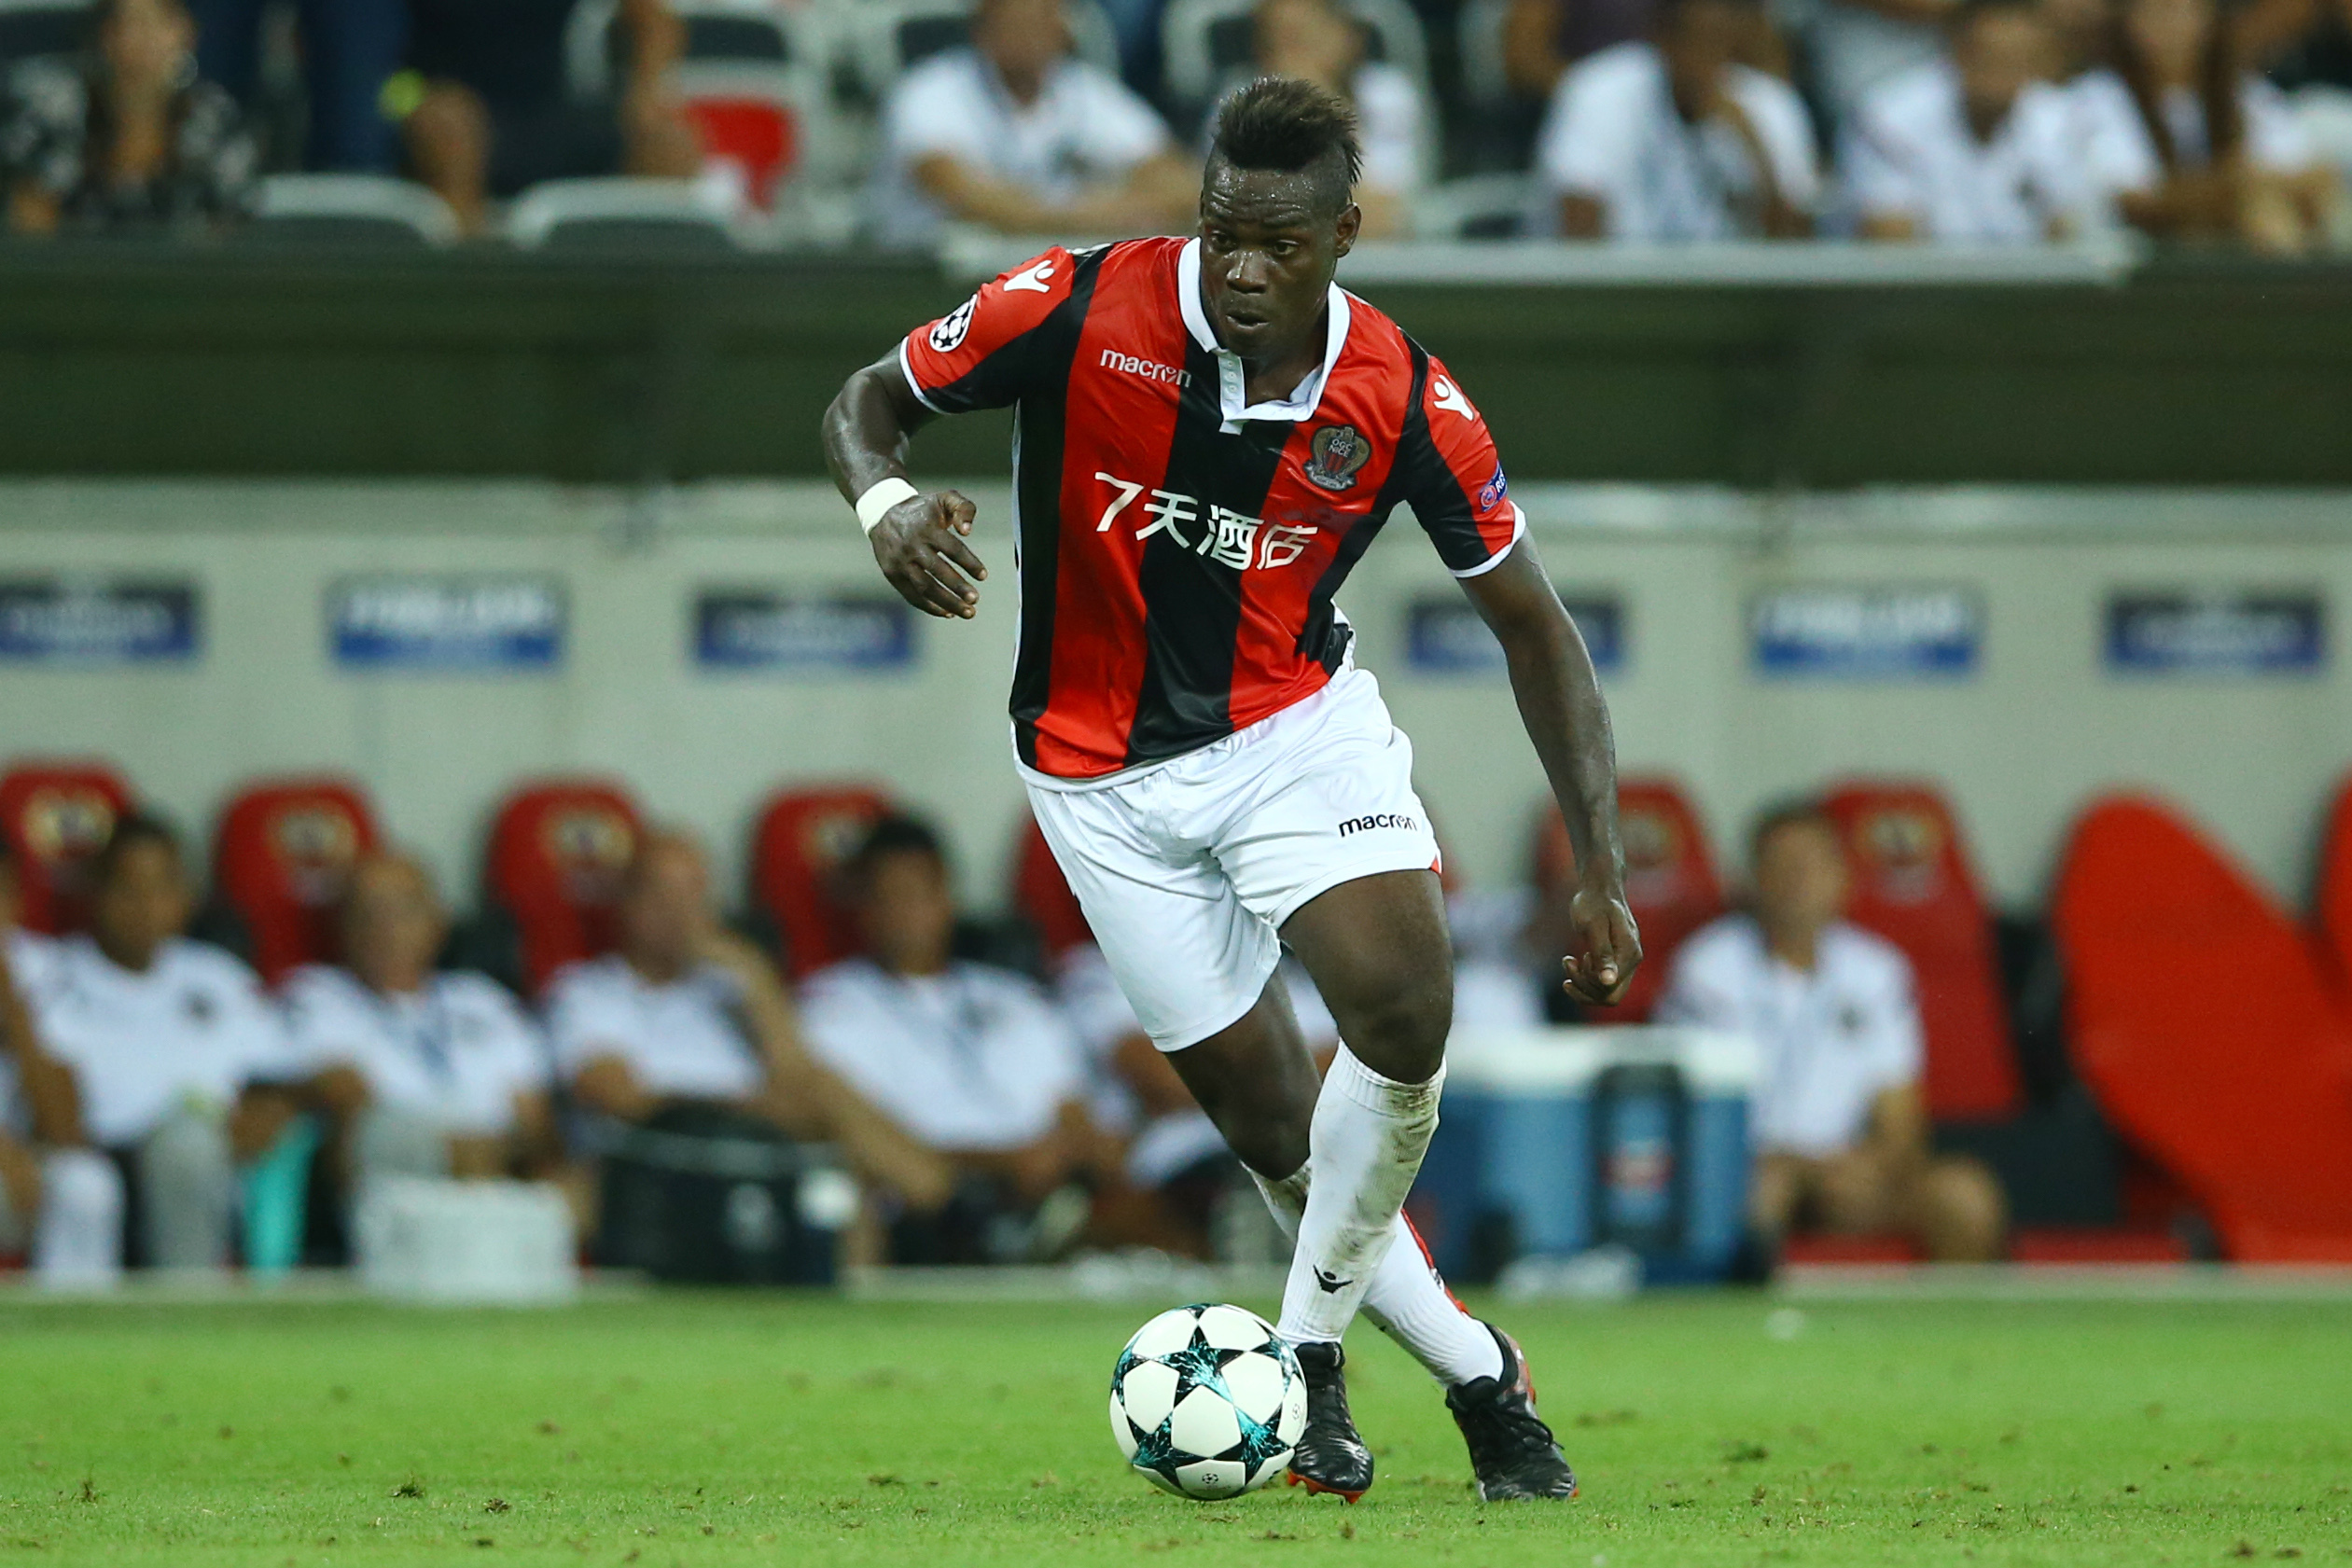 Balotelli in action for Nice from last season. Image: PA